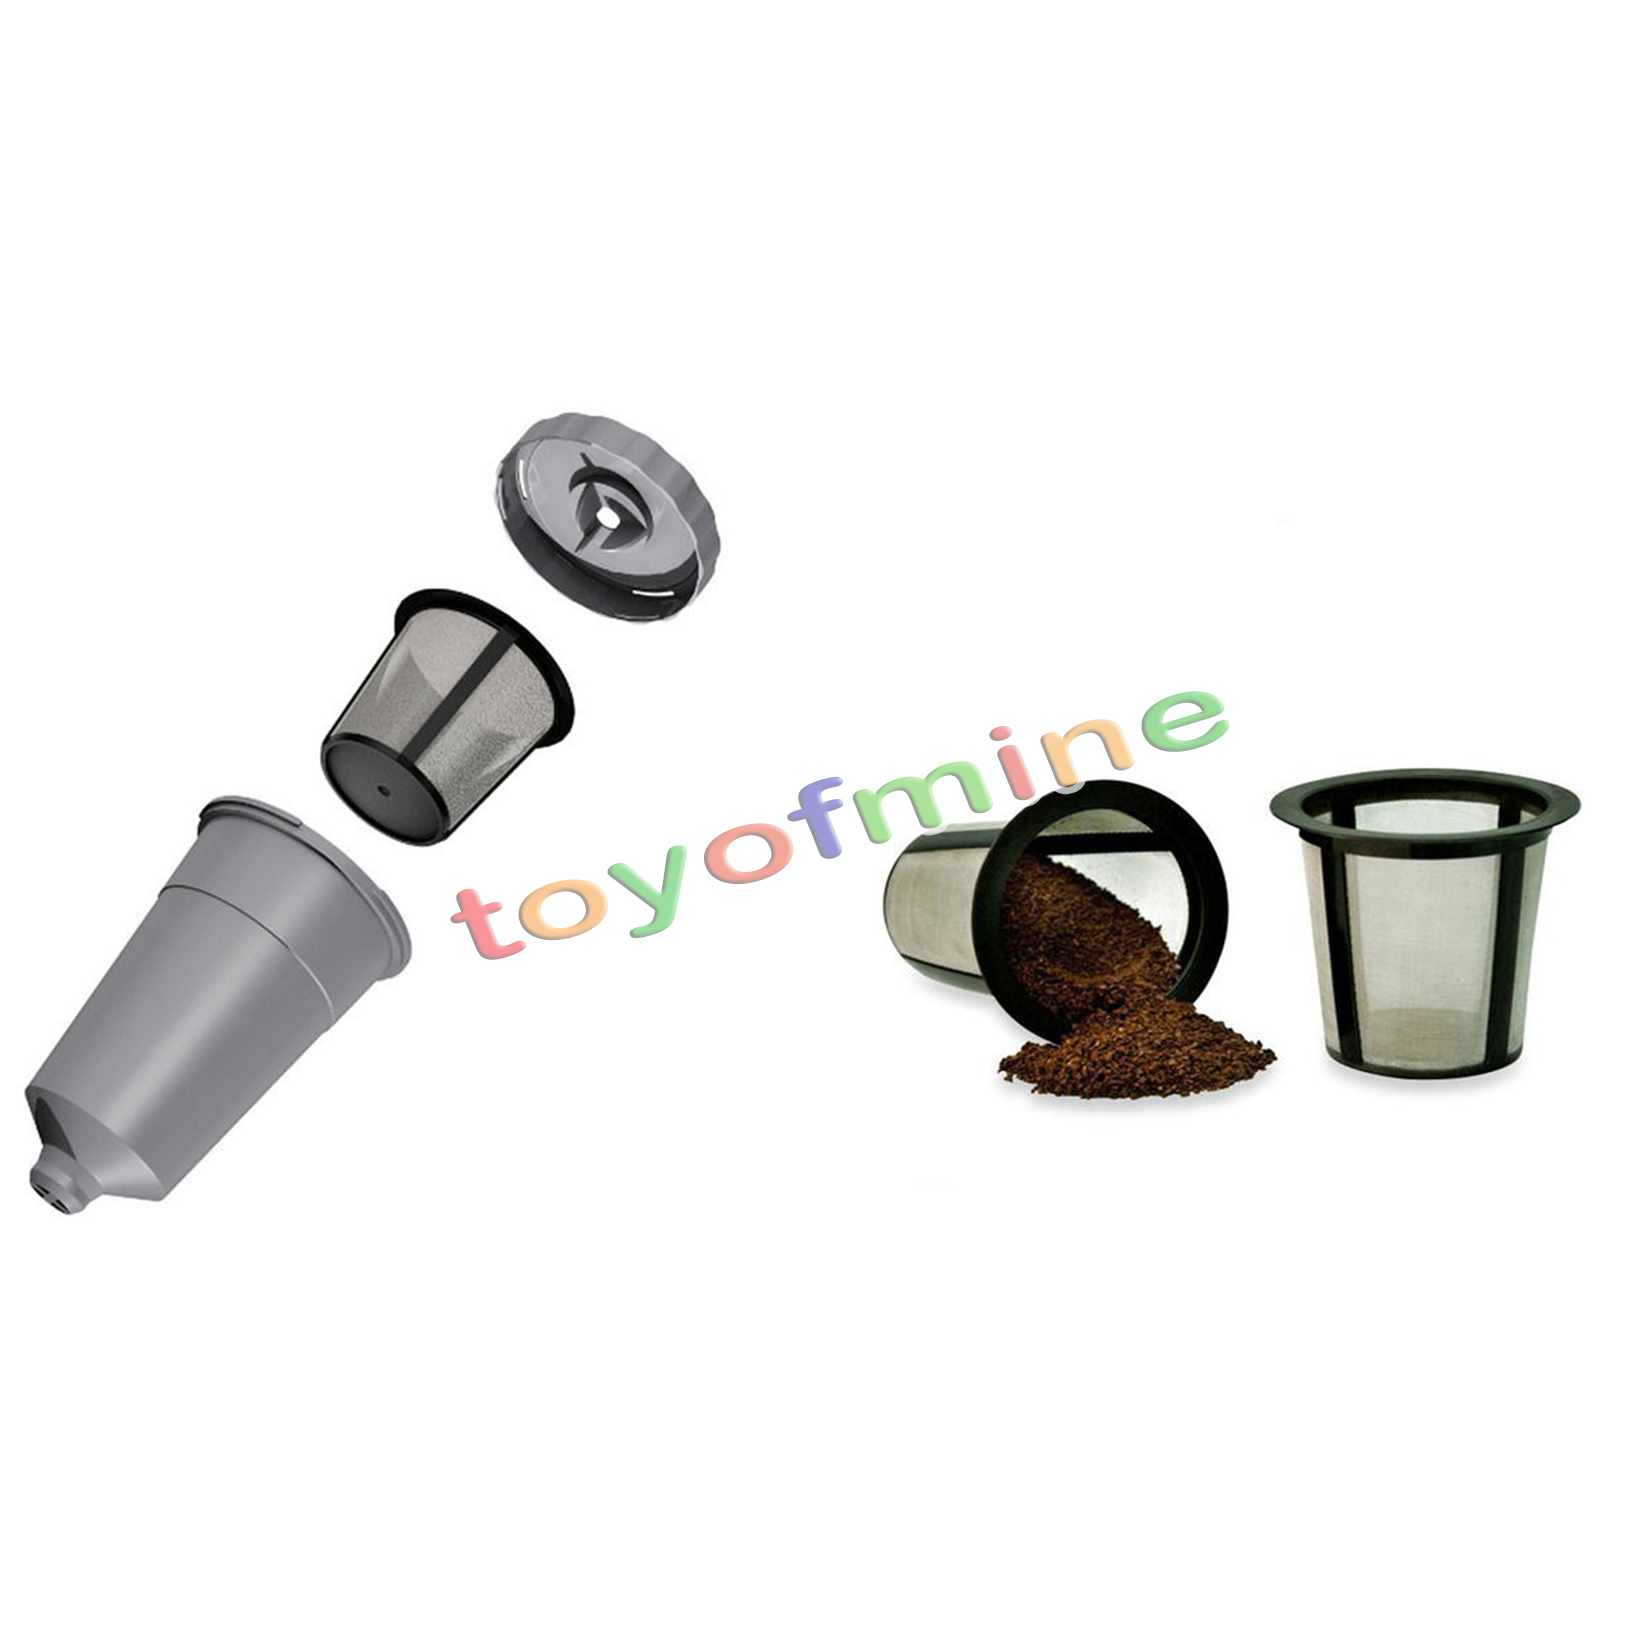 Replacement Part for KEURIG My K-Cup Reusable Coffee Filter Refillable Holder eBay